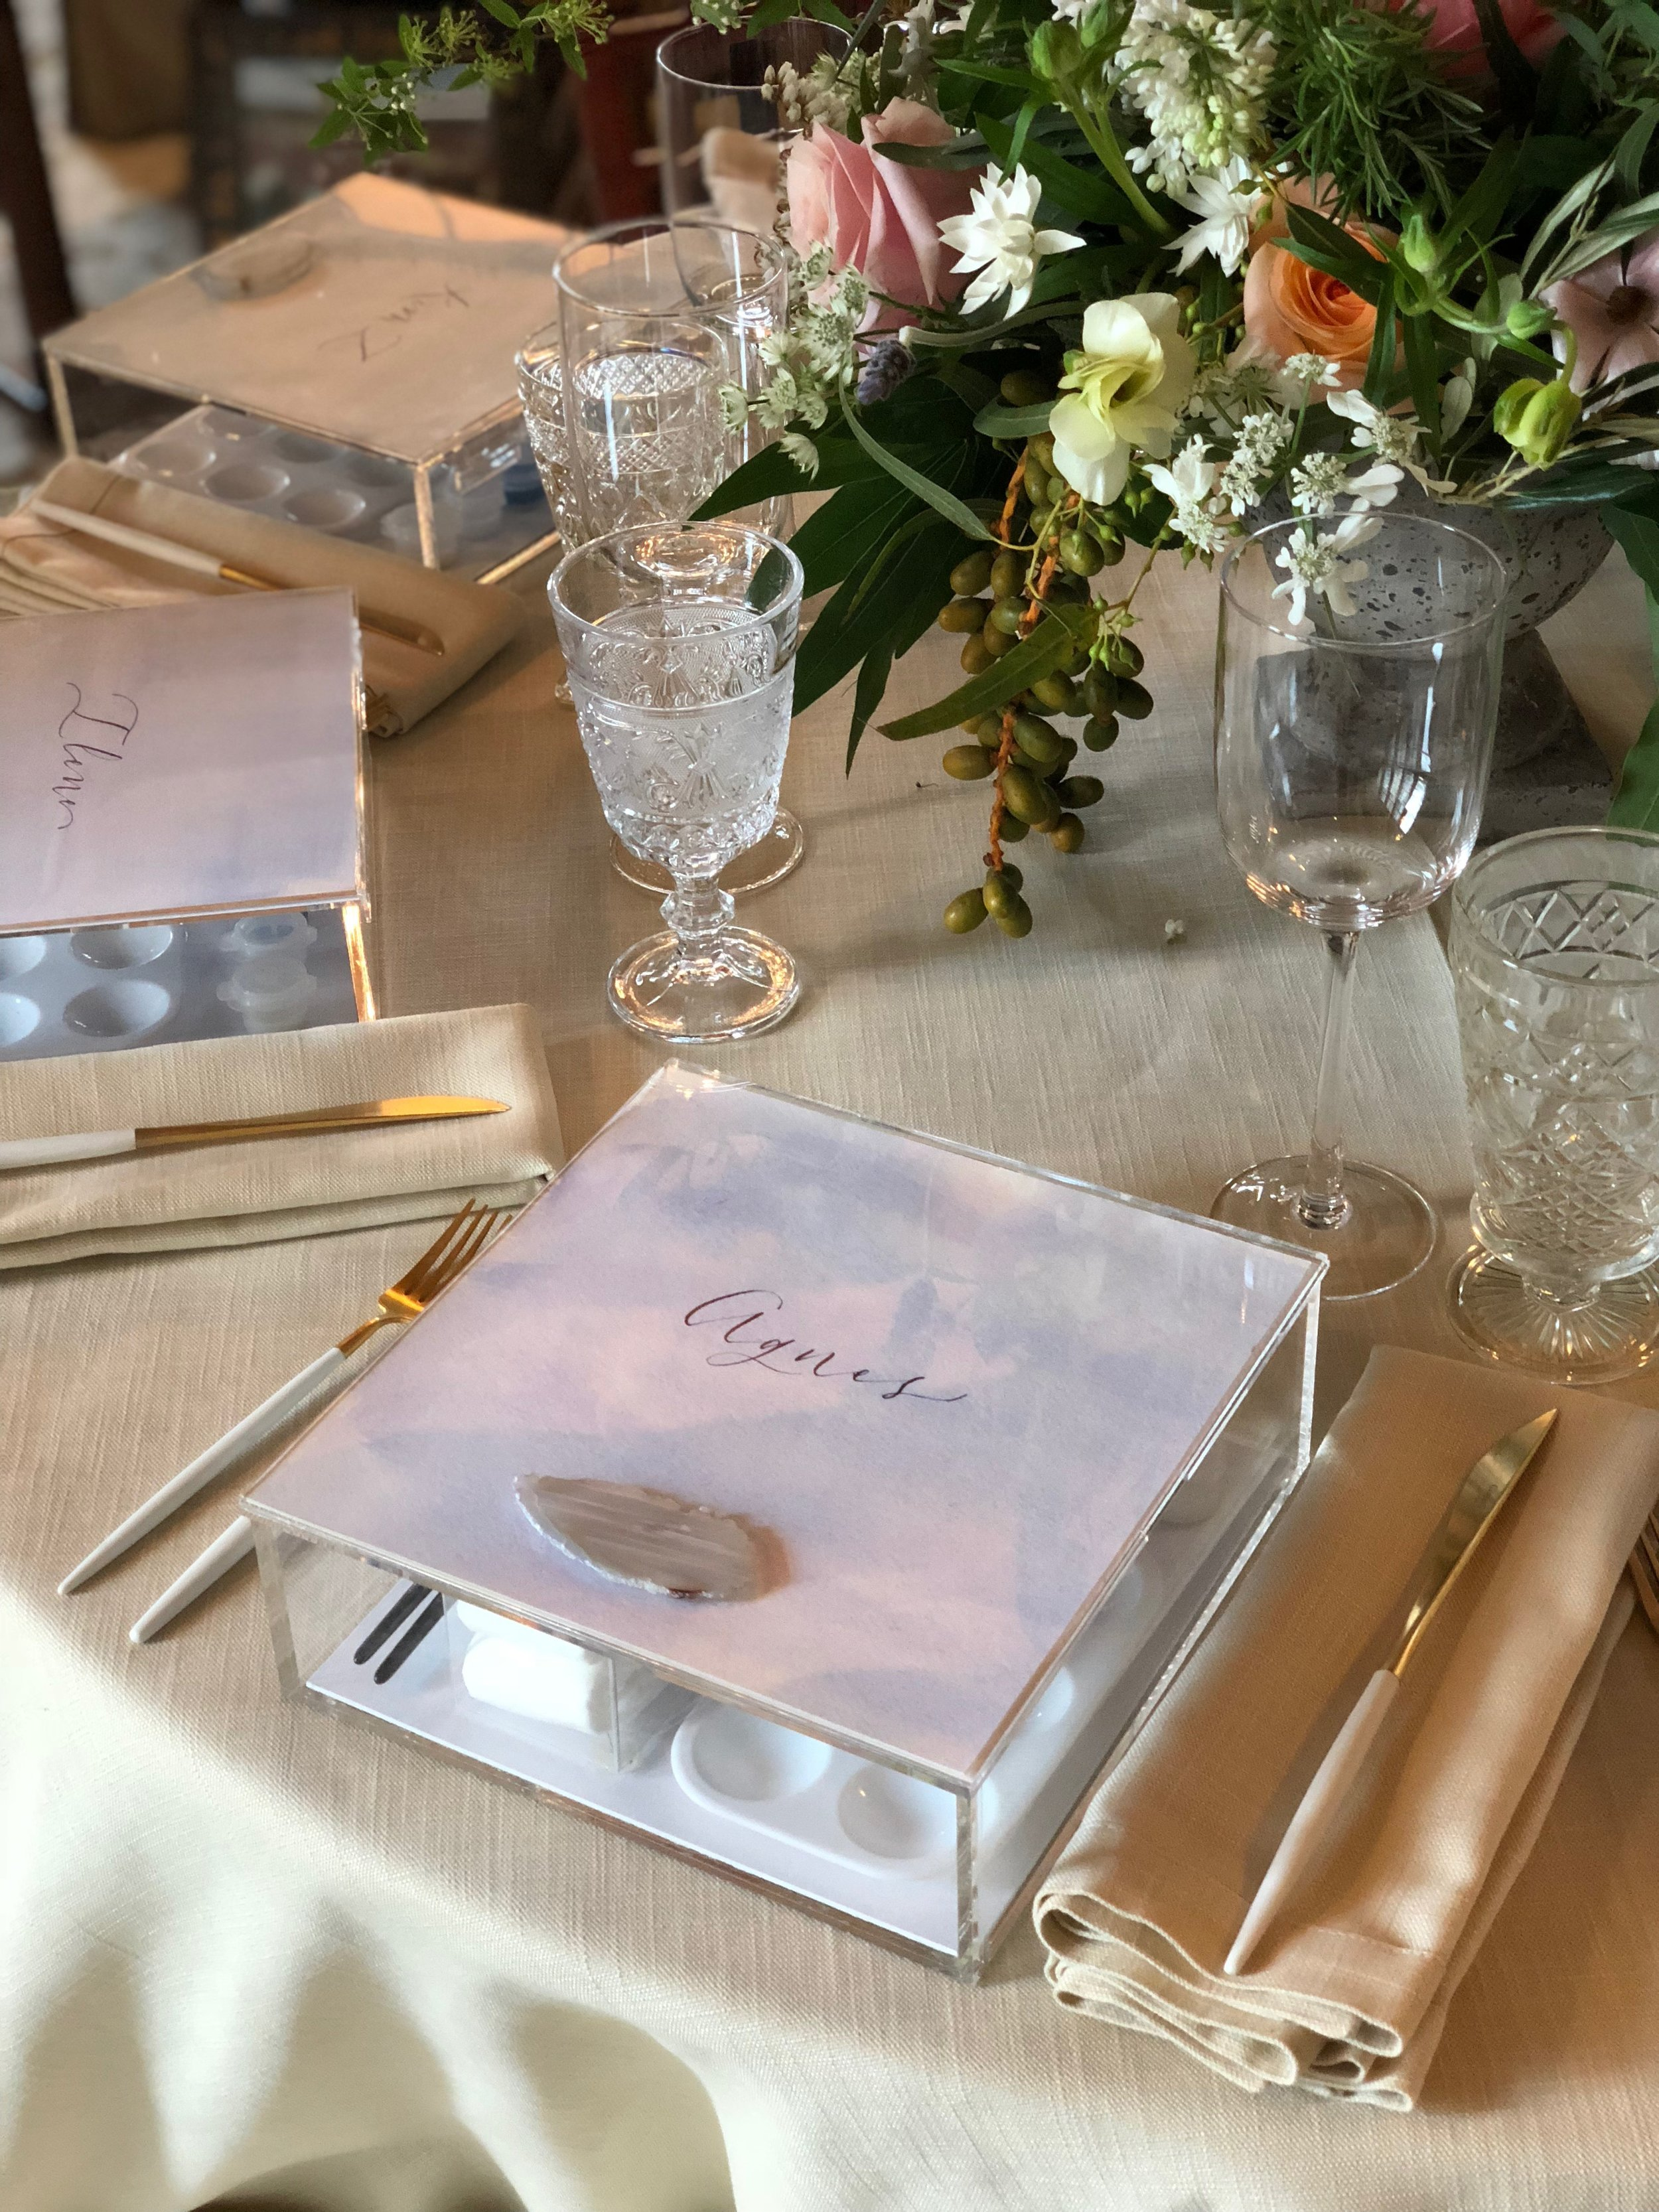 ACRYLIC WATERCOLOR BOX WITH PLACE CARD